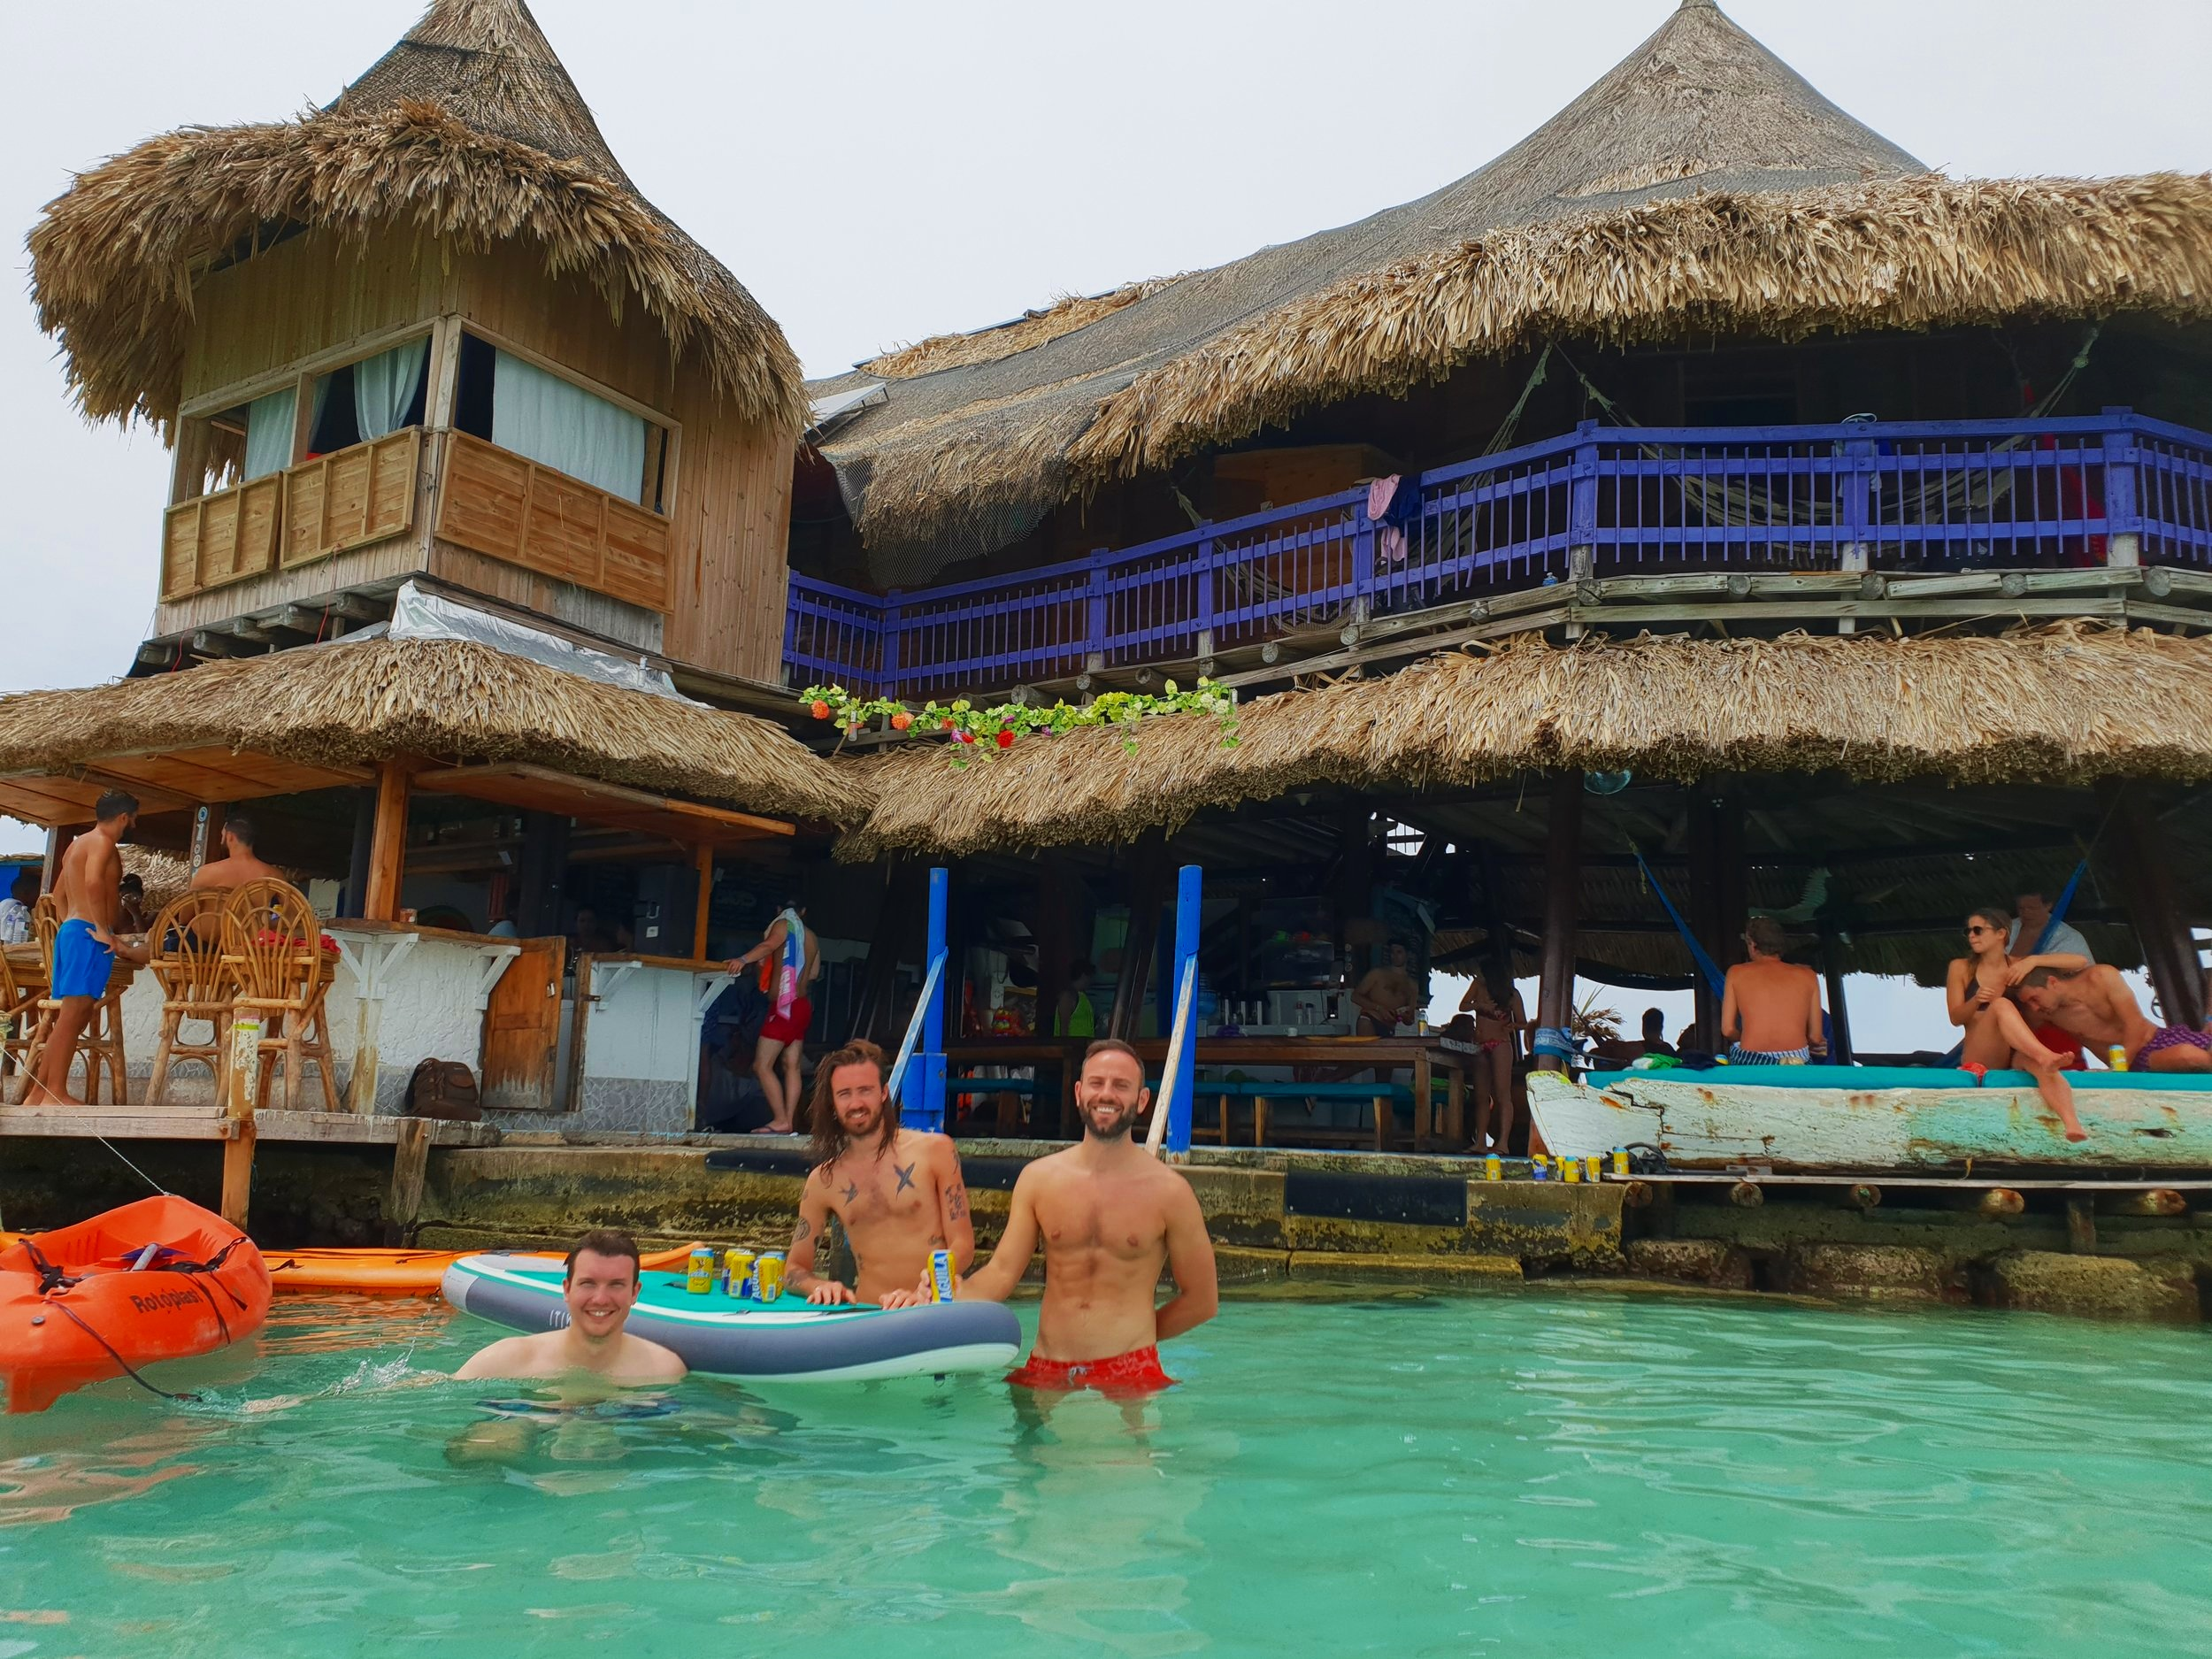 Casa en el Agua. Nice ocean views, great food…and some questionable guests? I'm talking about the previously mentioned Dutch man, despite my friends and I being the main focus of this photo. To be sure, we think we are great.